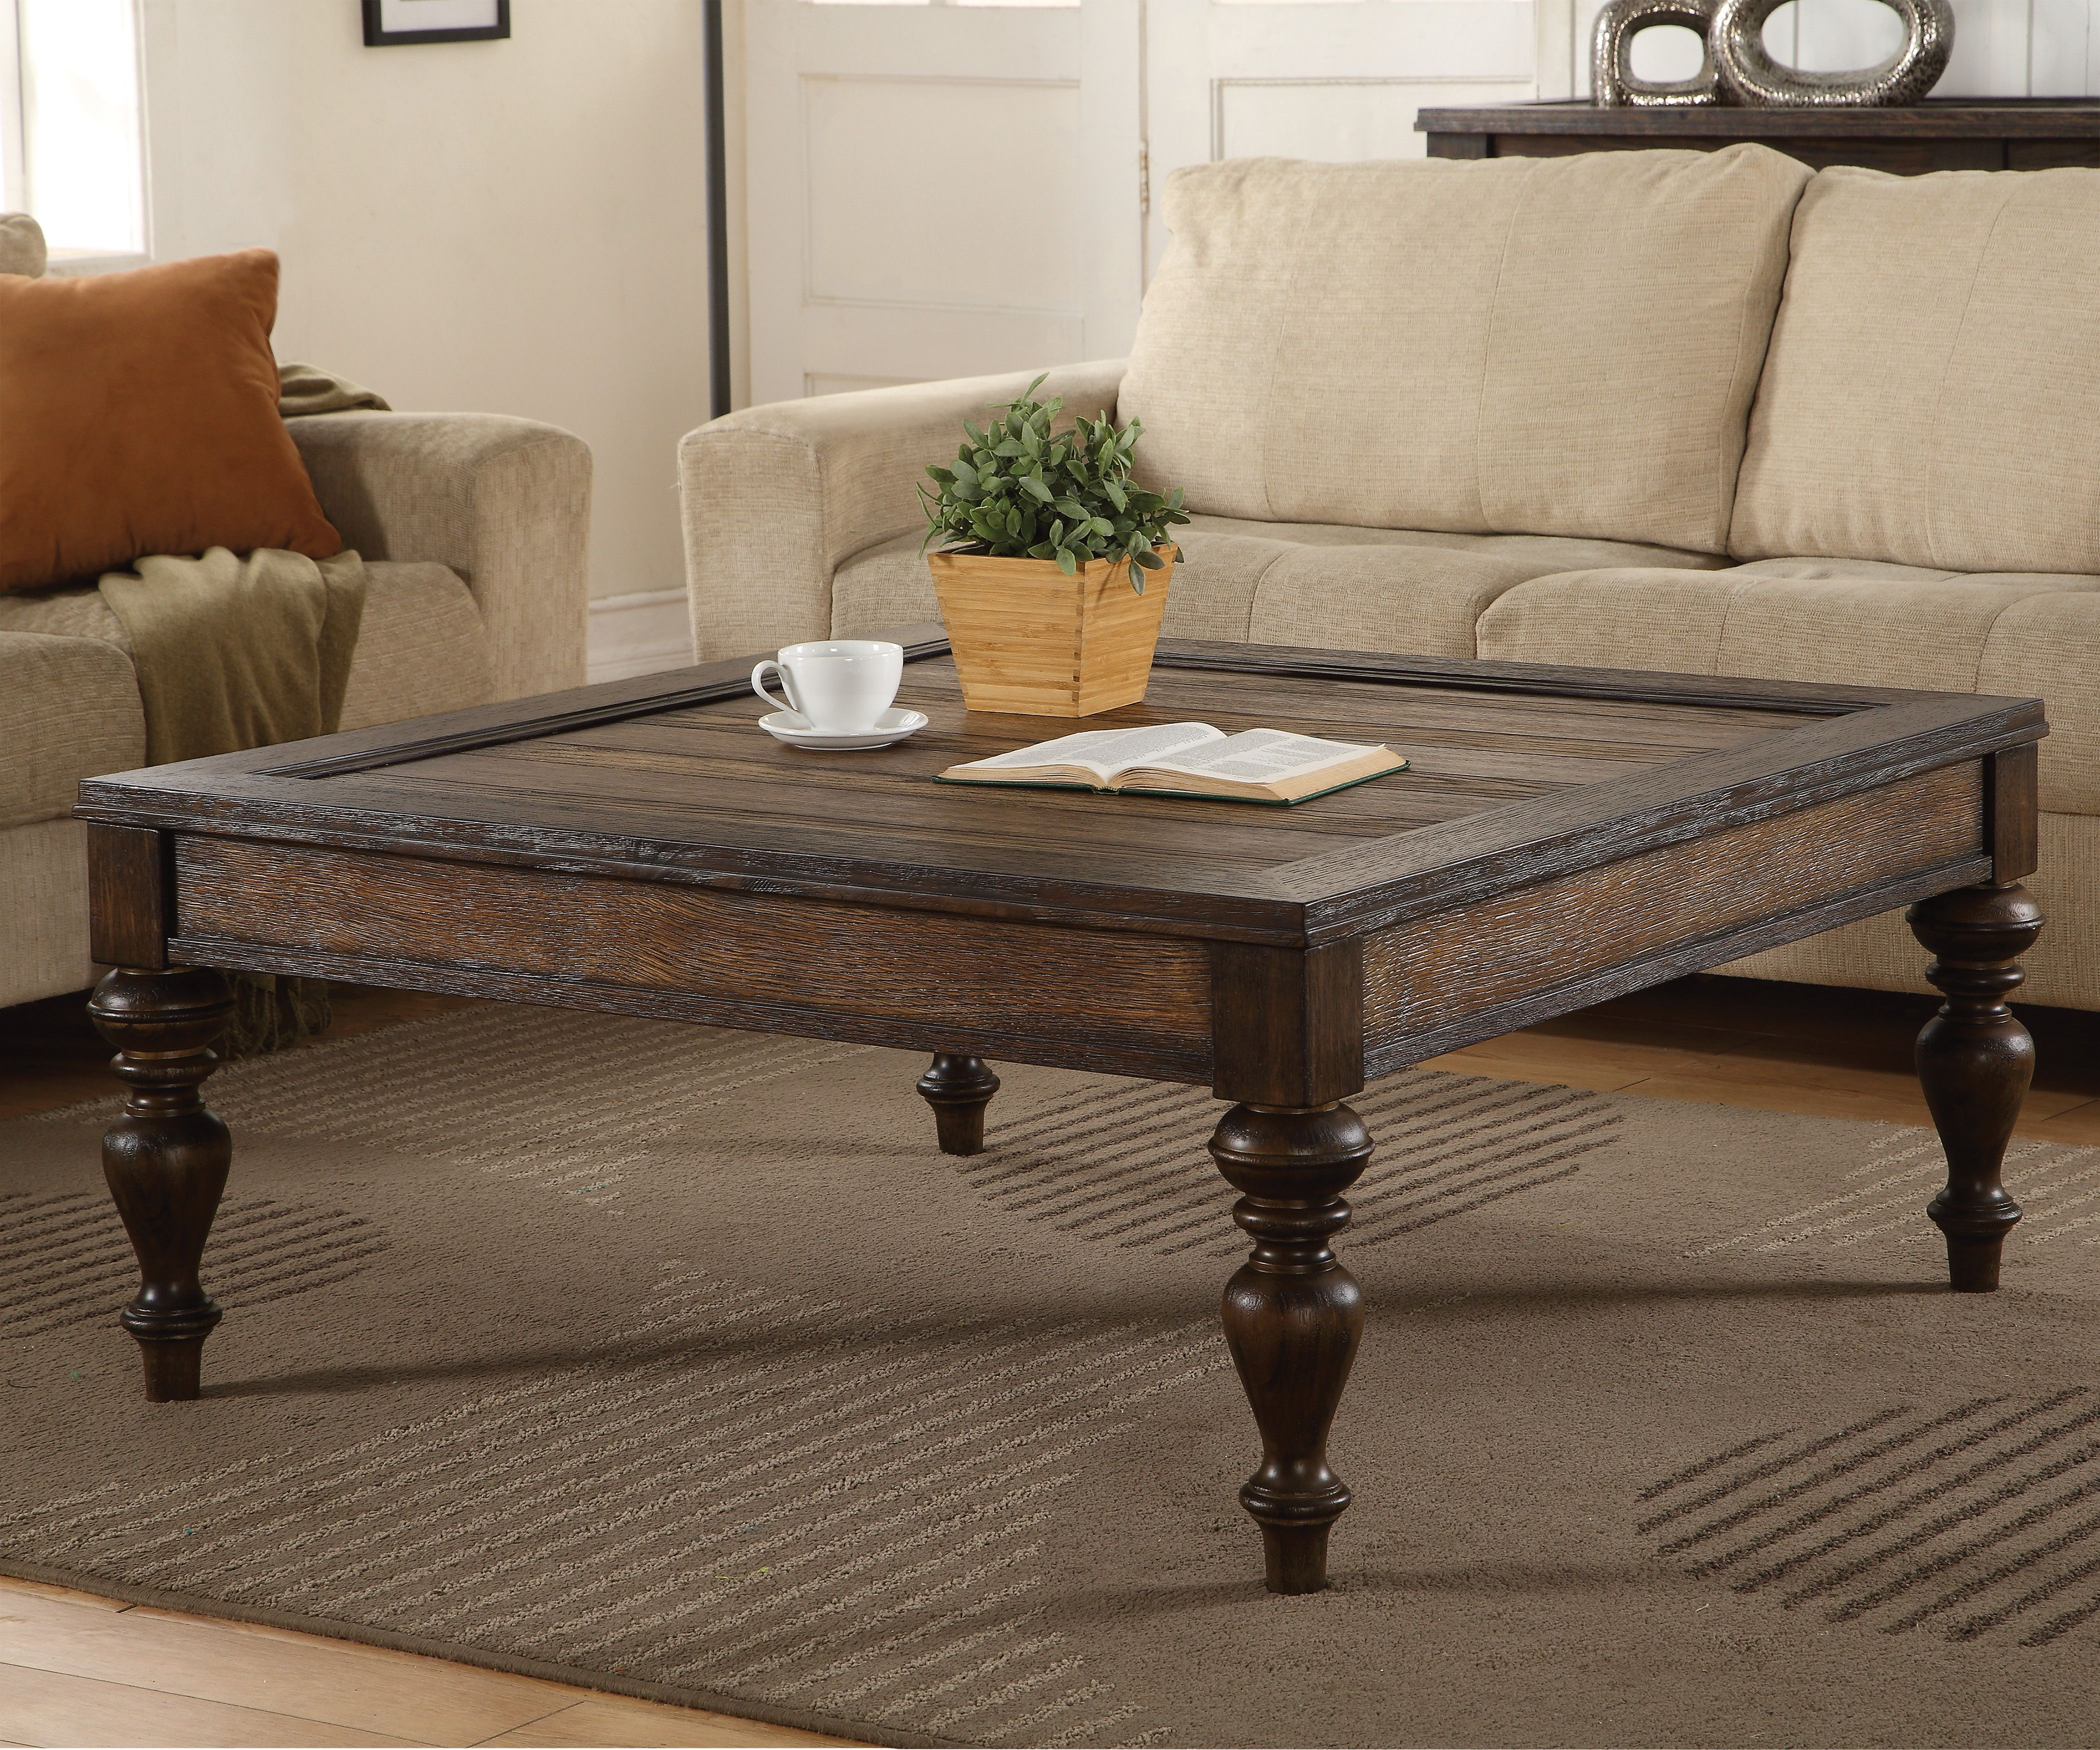 With Its Rich Wood Grain Contrasting Wood Finishes And Detailed Distressing The Bordeaux Coffee Table Is Coffee Table Coffee Table Wood Coffee Table Square [ 3500 x 4200 Pixel ]